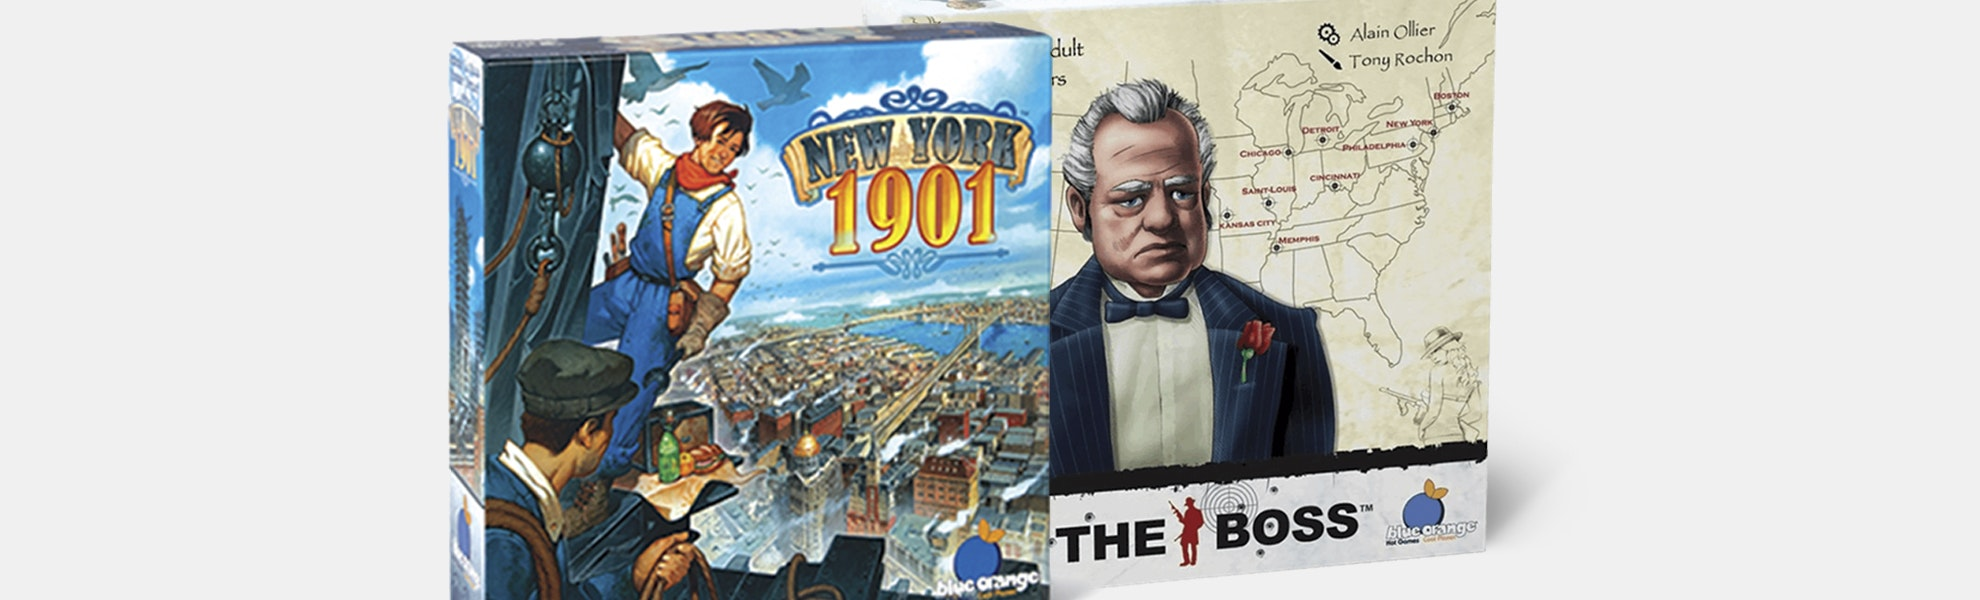 New York 1901 & The Boss Board Game Bundle